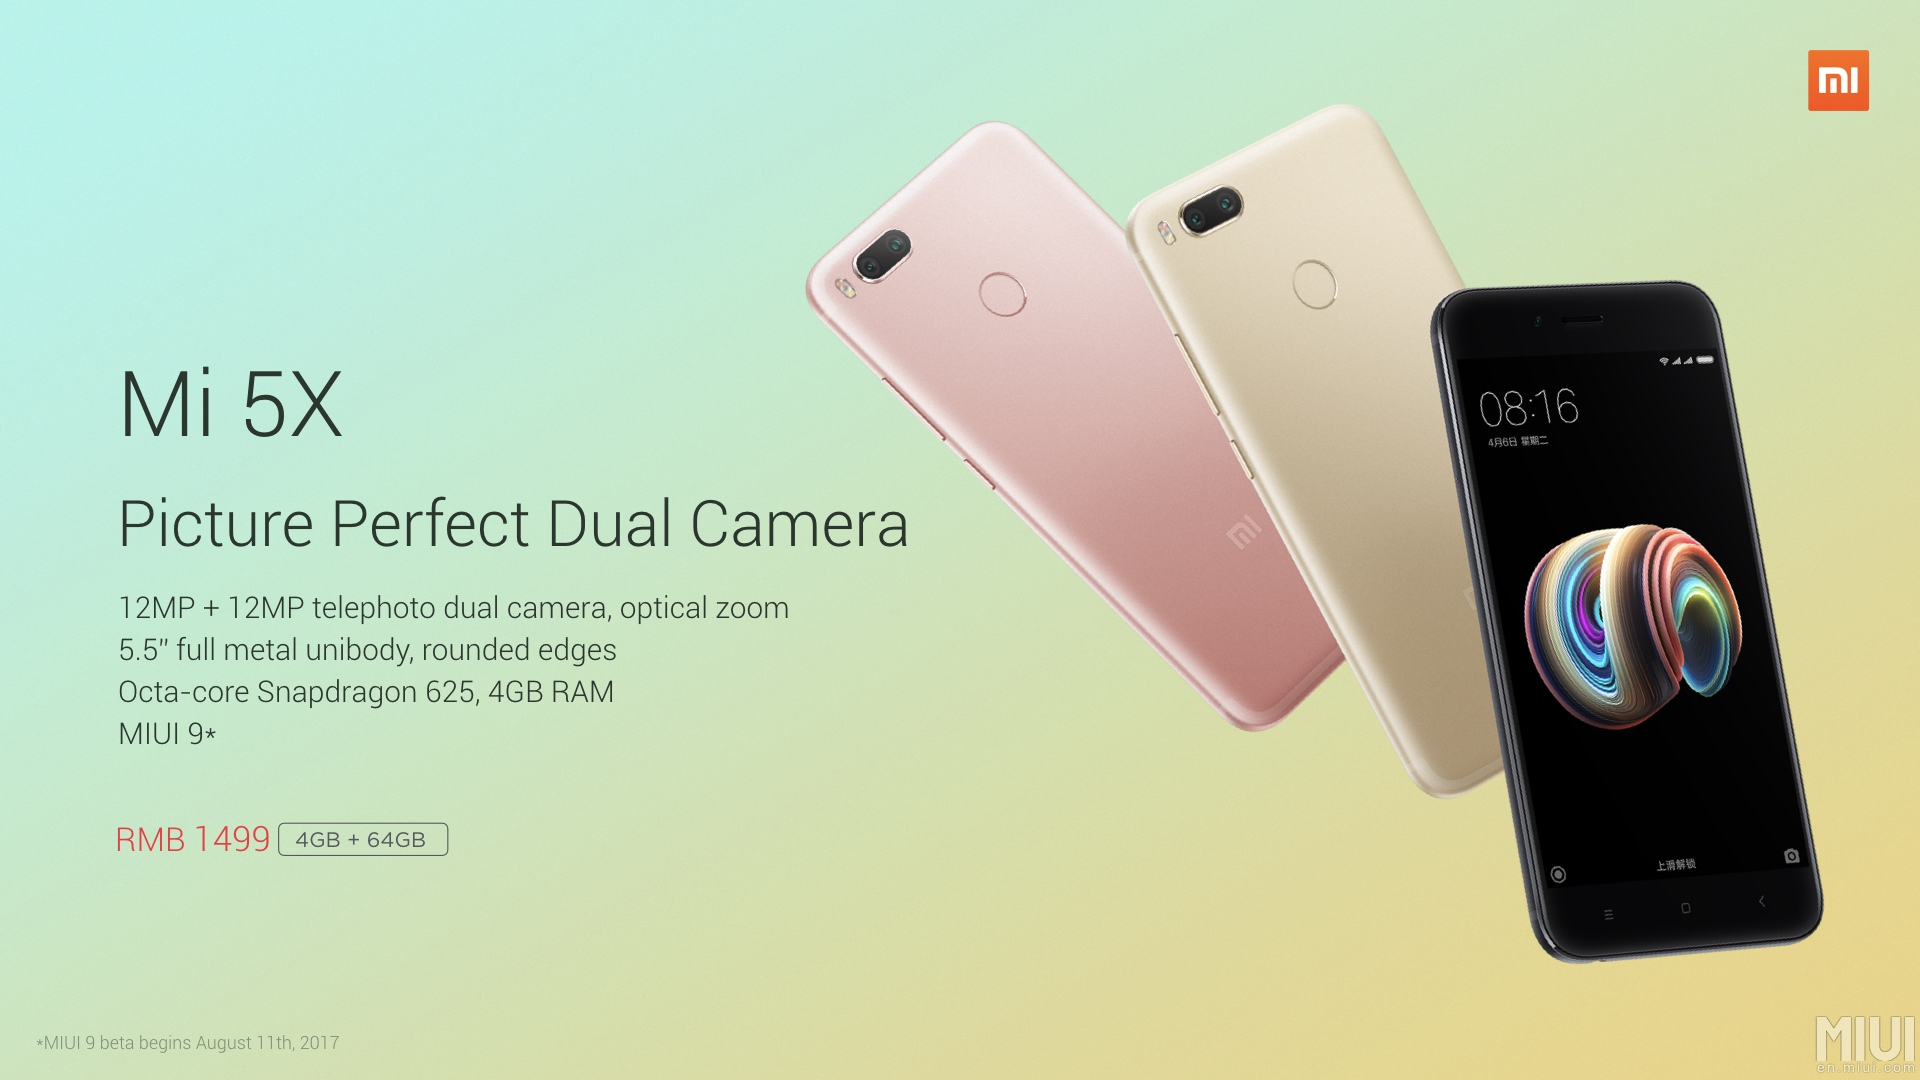 Xiaomi Mi 5X with Dual Camera, Snapdragon 625 and MIUI 9